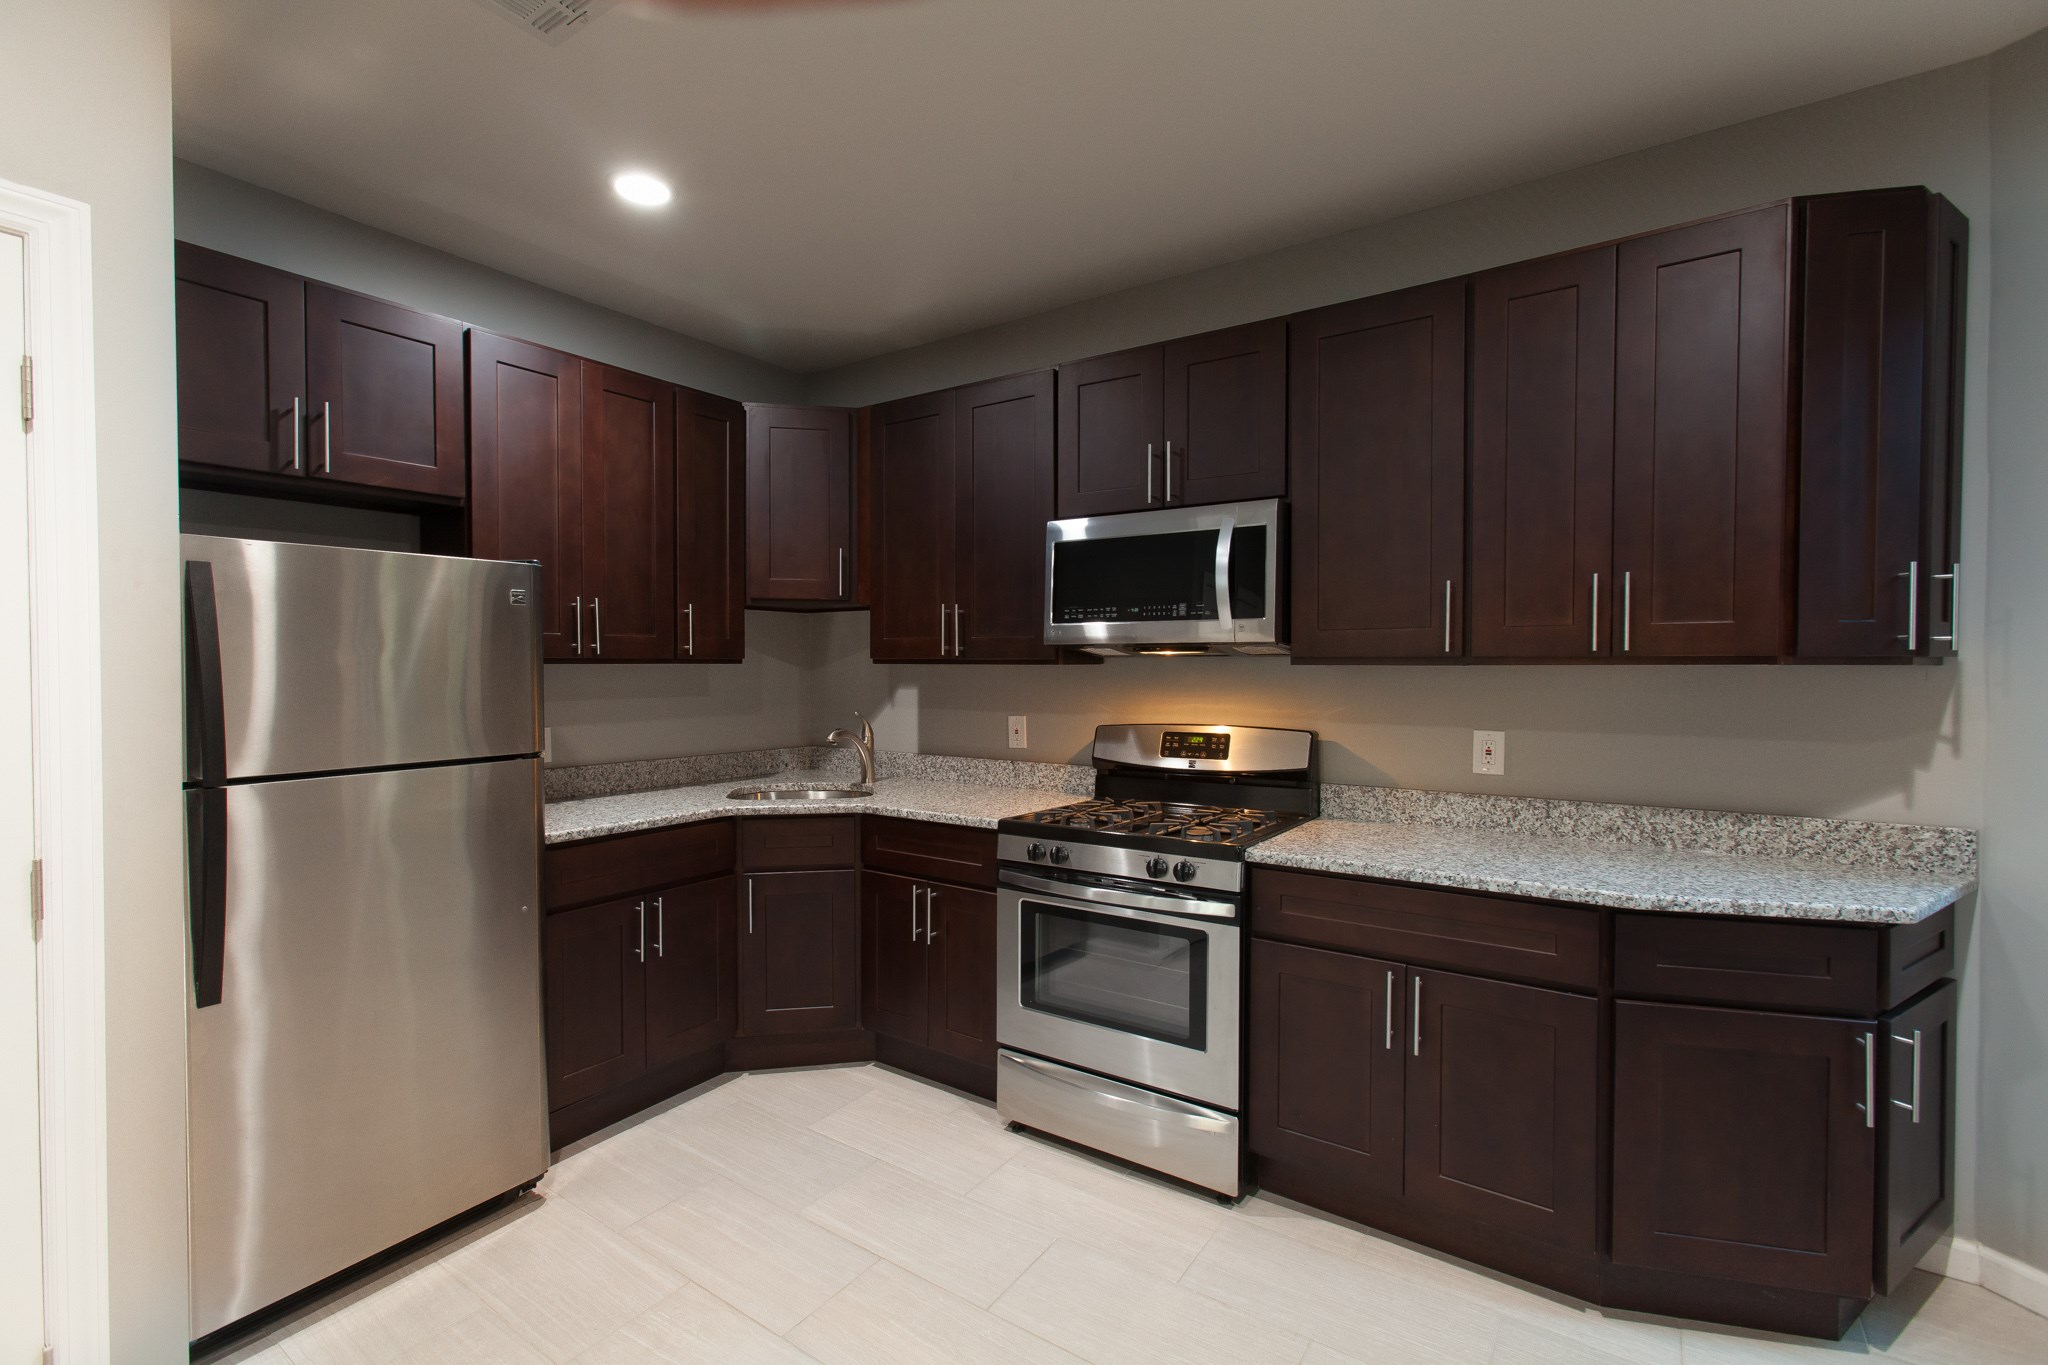 Offered Home To Rent In Jersey City Nj Rent A Houses Apartments Flats Commercial Space